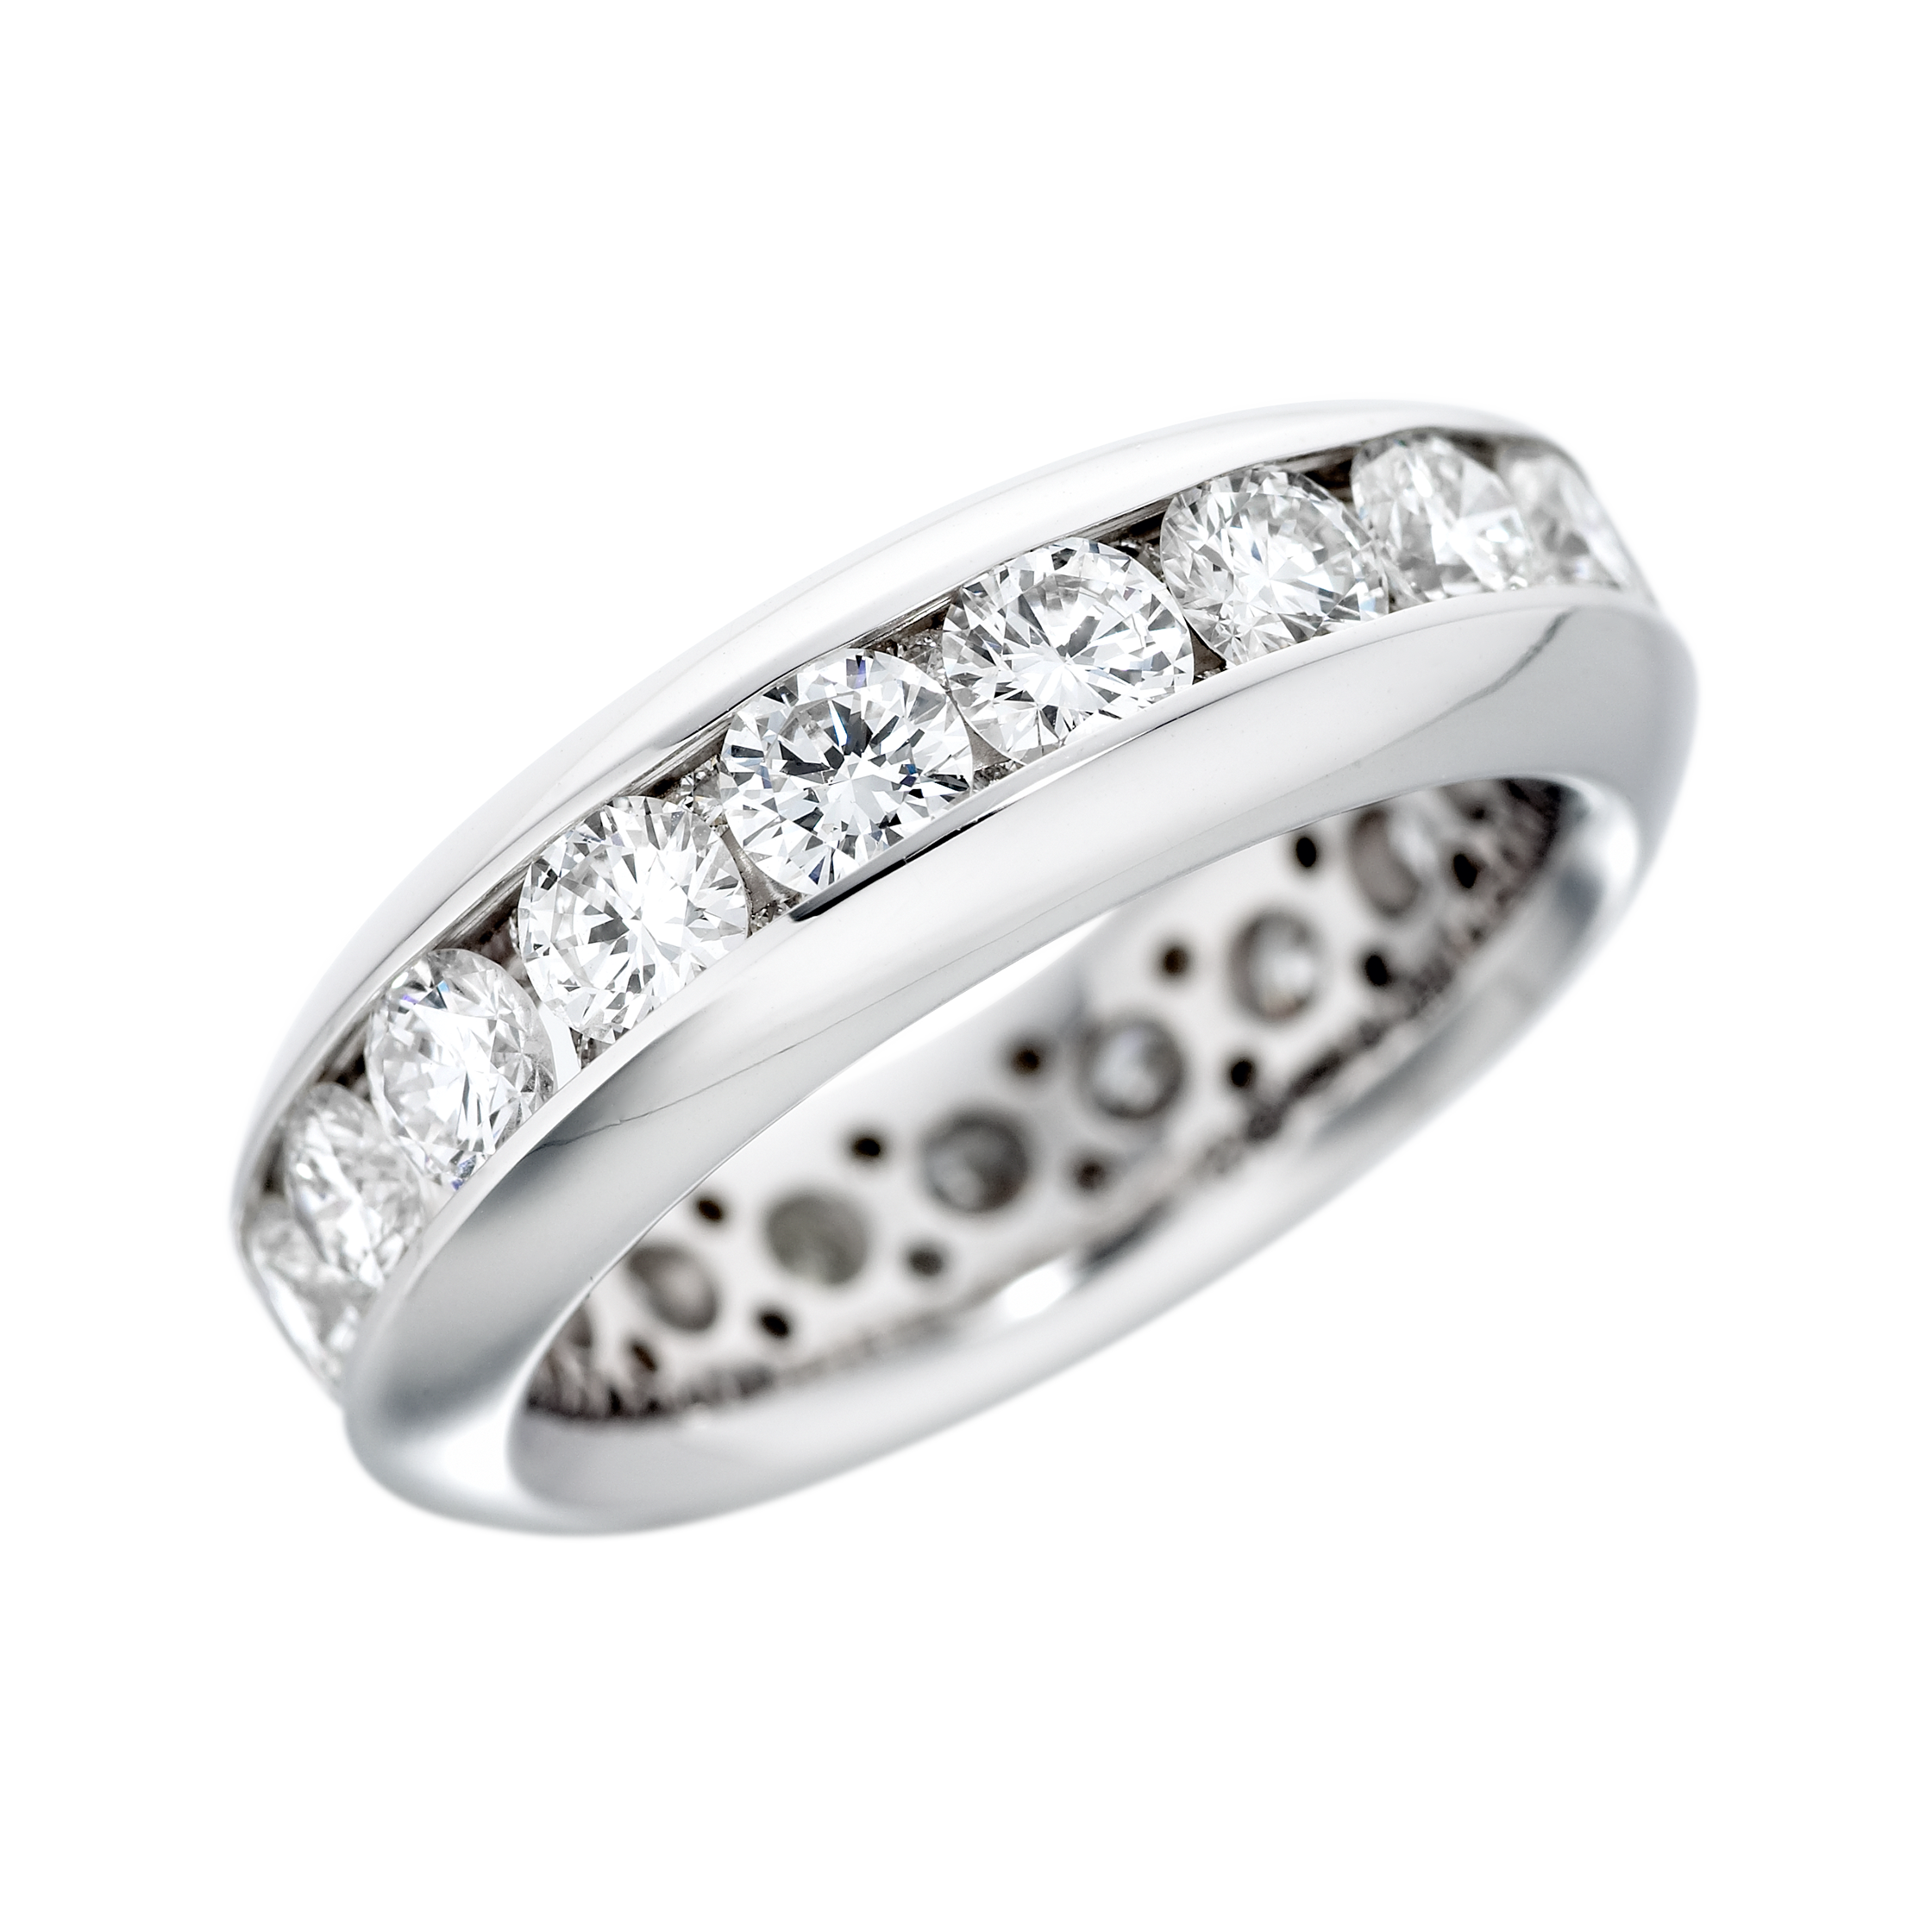 designs diamond ring engagement kwon baguette marquise products two equilibrium rings jennie piece